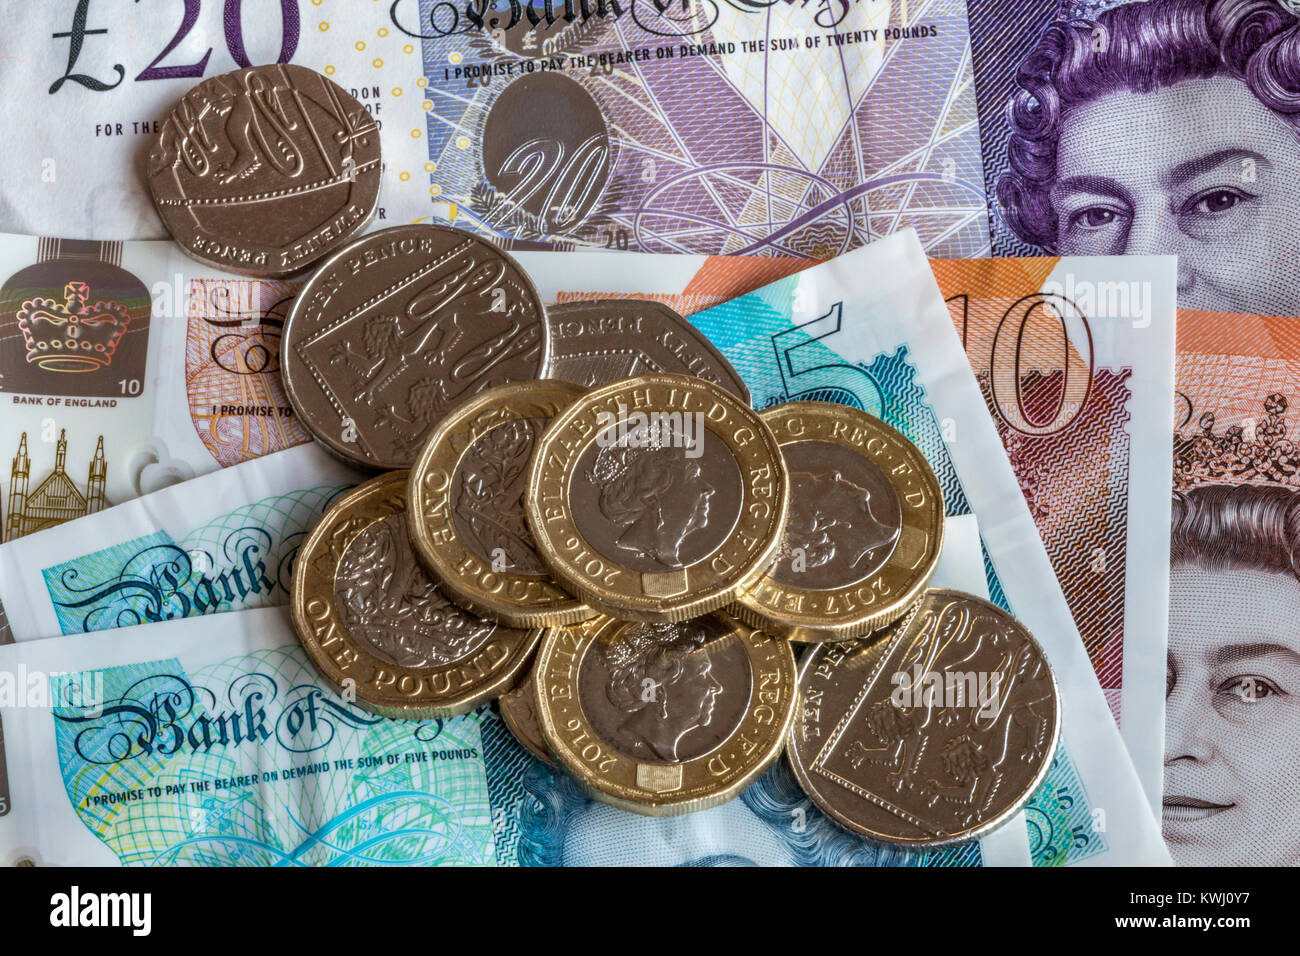 Close up of British currency , £10 pound notes £20 note and £1 coins and other assorted change. - Stock Image